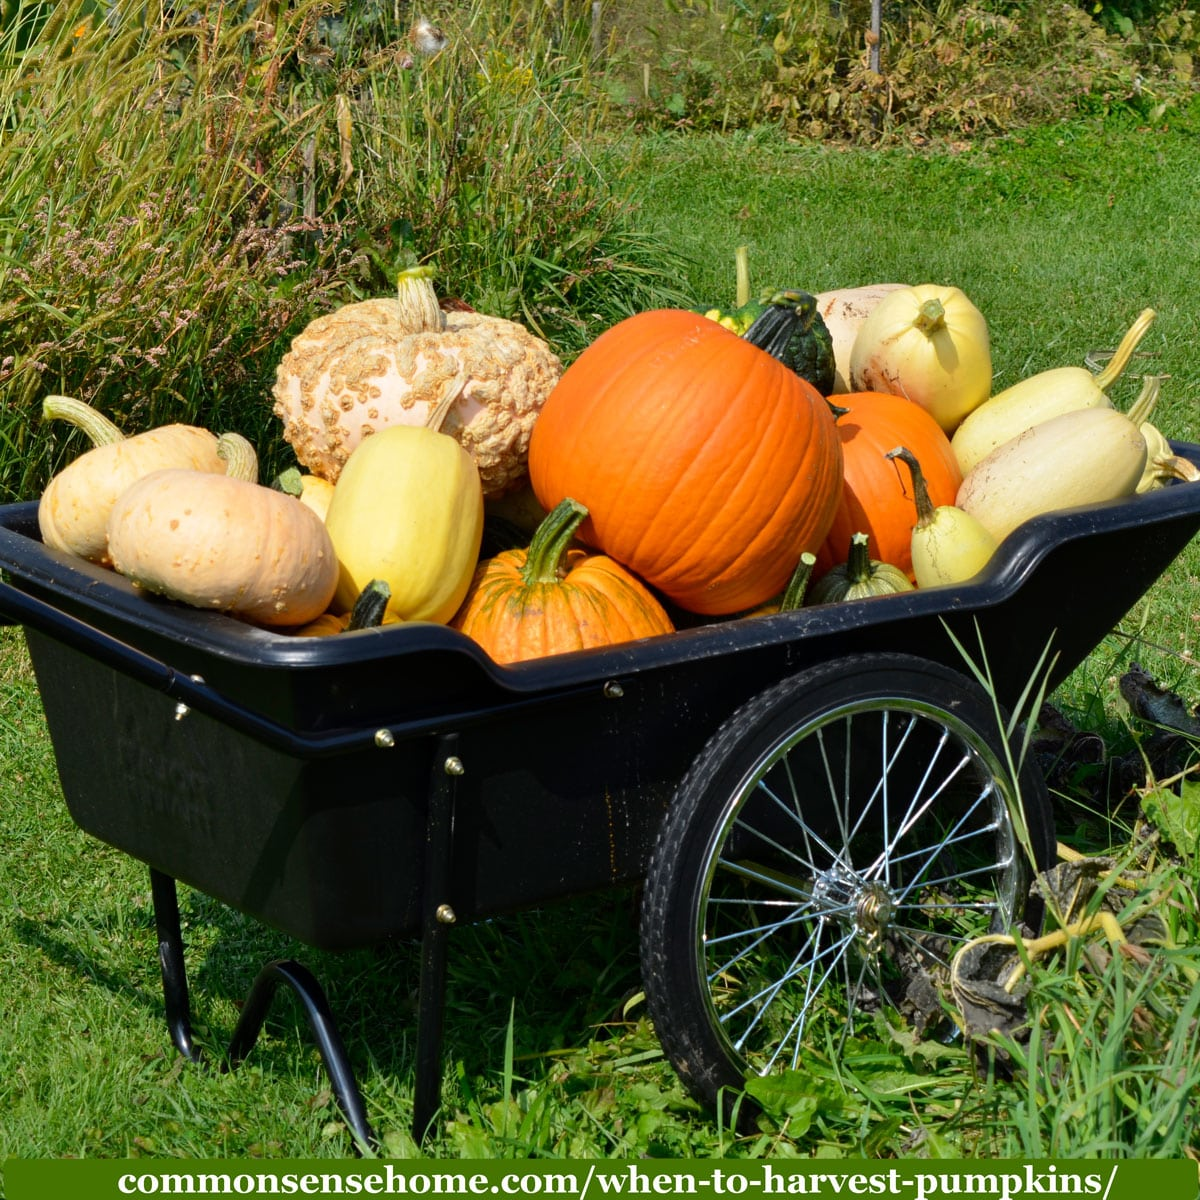 cart full of pumpkins and winter squash